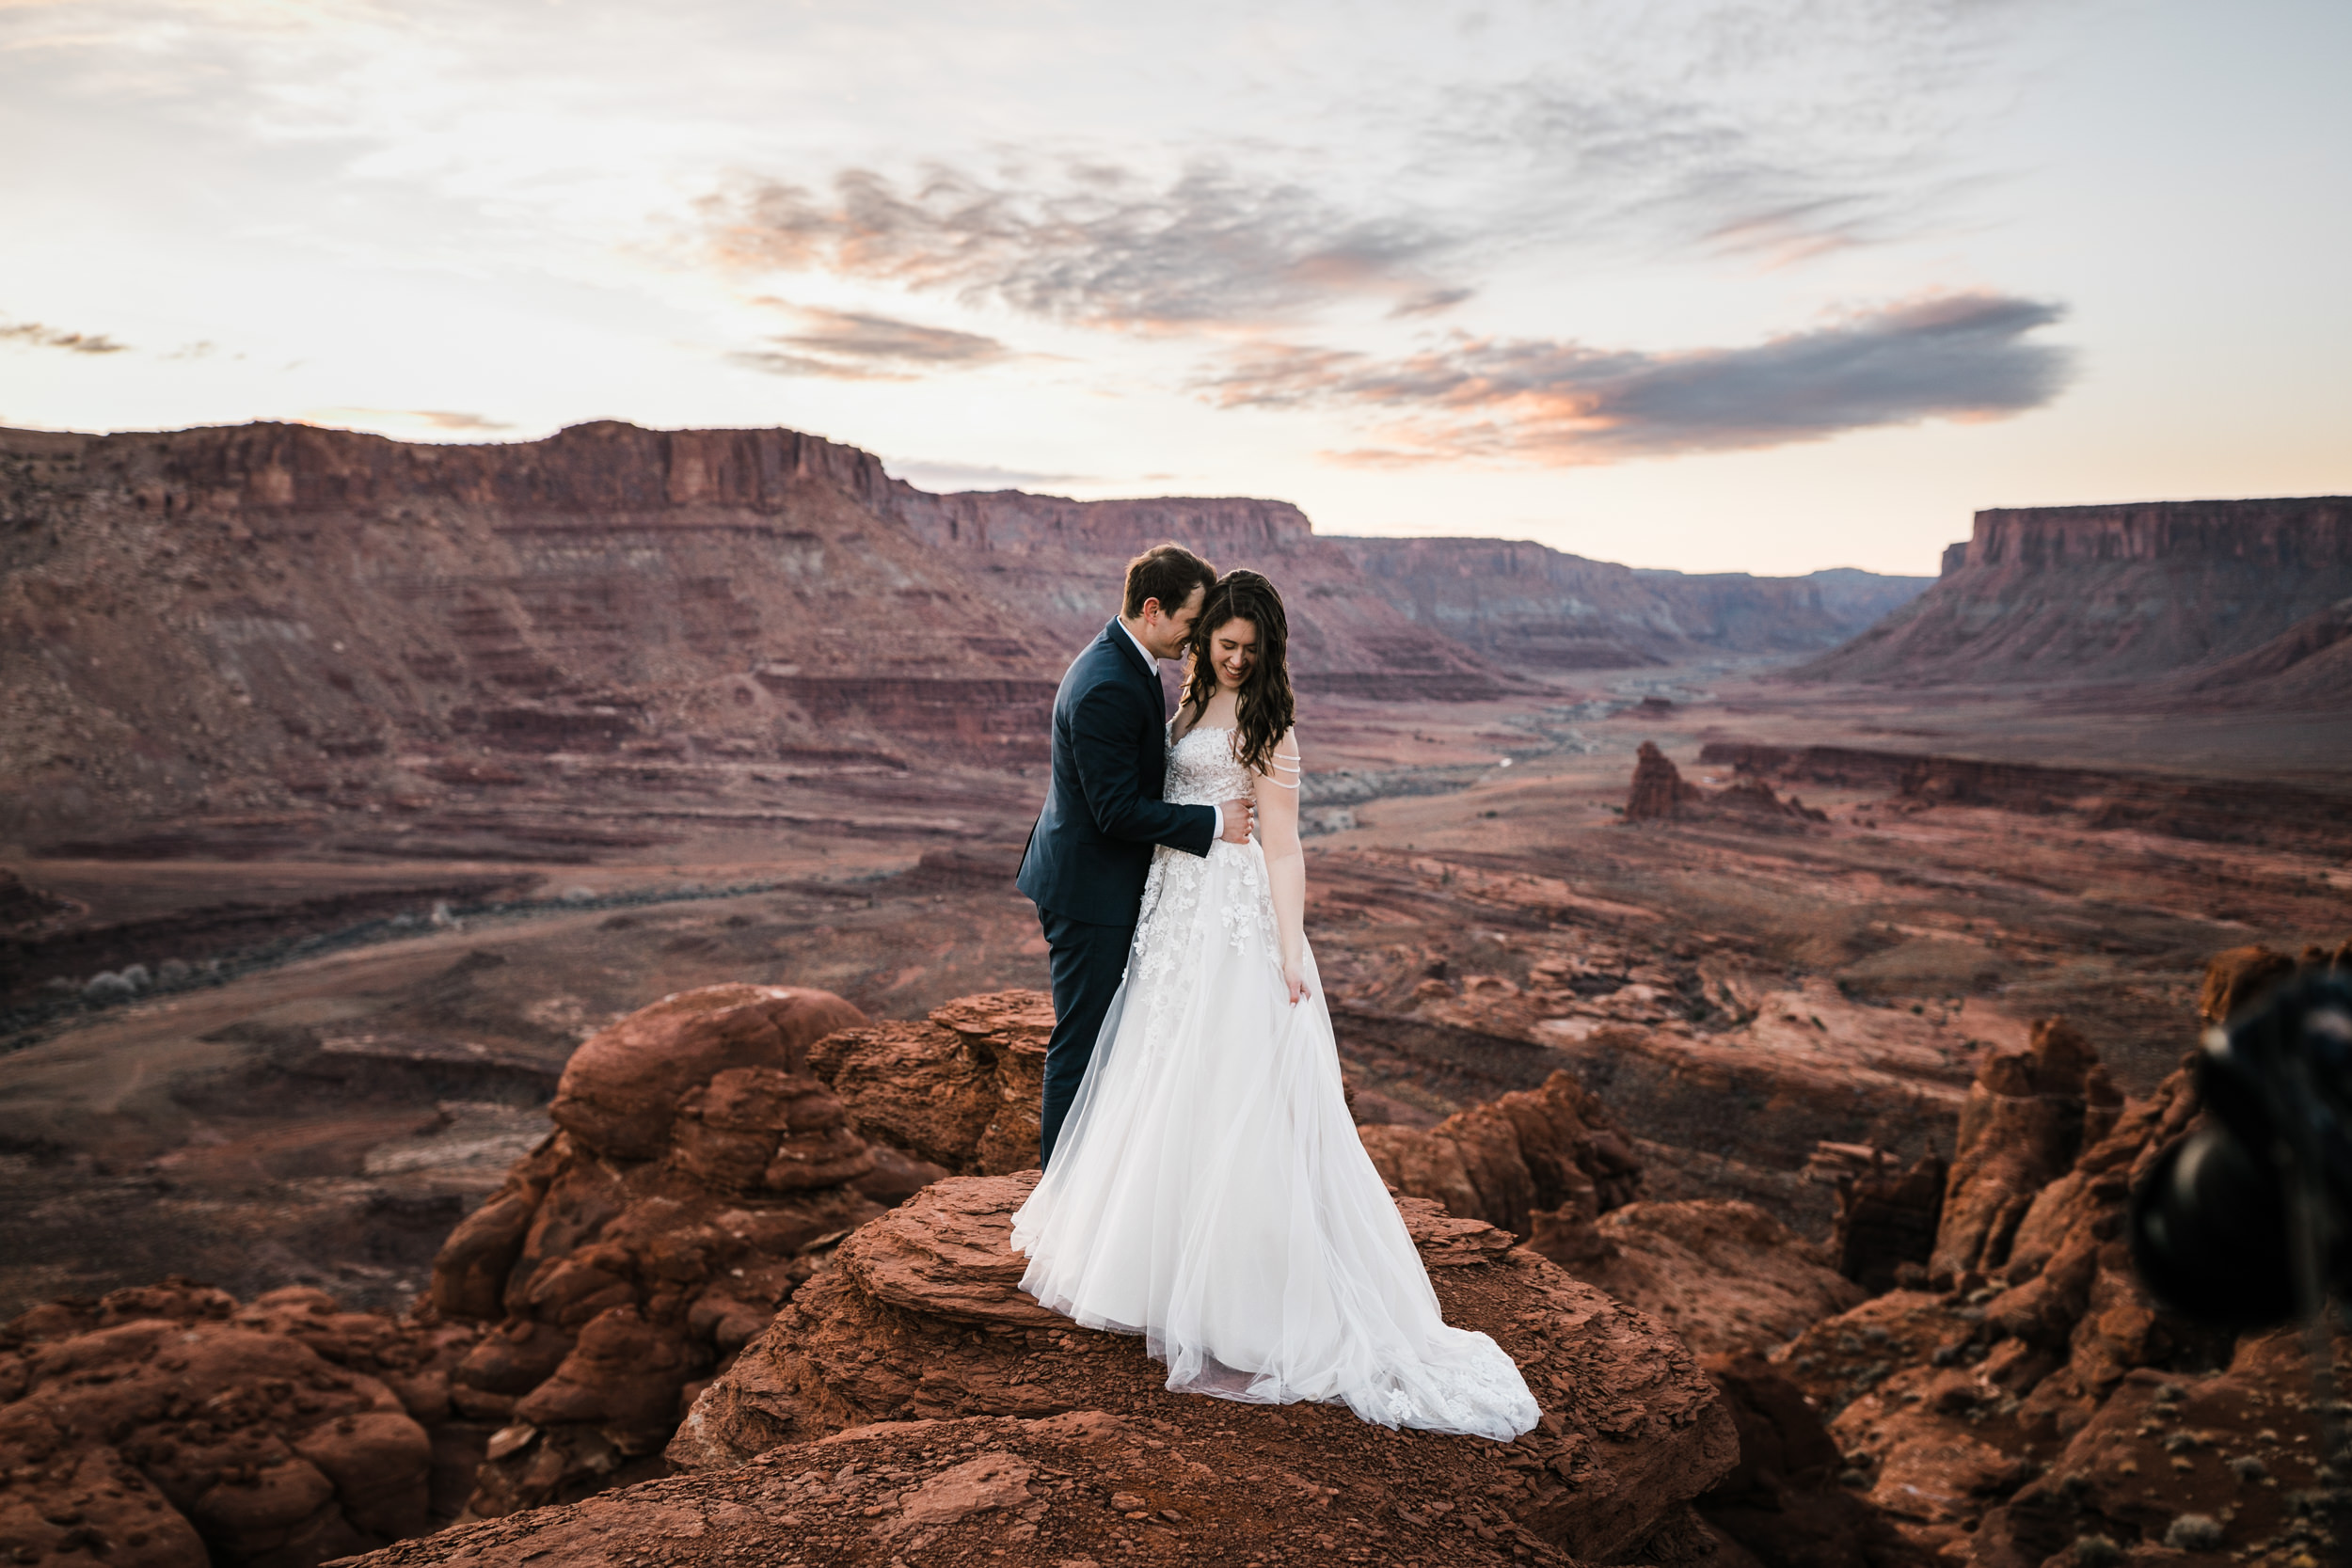 Claire's wedding dress was so beautiful. The weather was amazing in Moab this morning and make for a perfect sunrise.